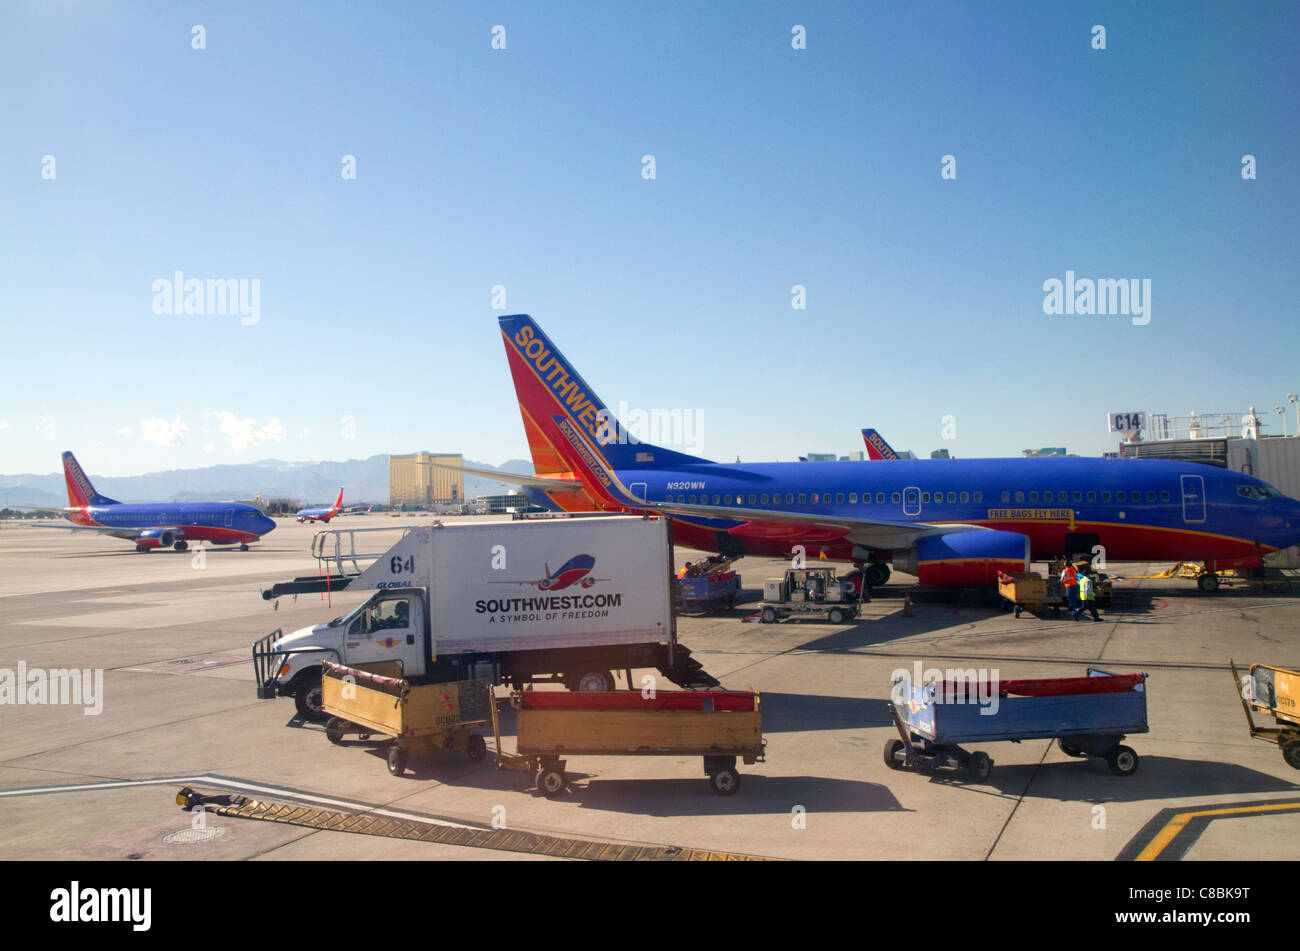 Southwest Boeing 737 at the Las Vegas airport, Nevada, USA. - Stock Image